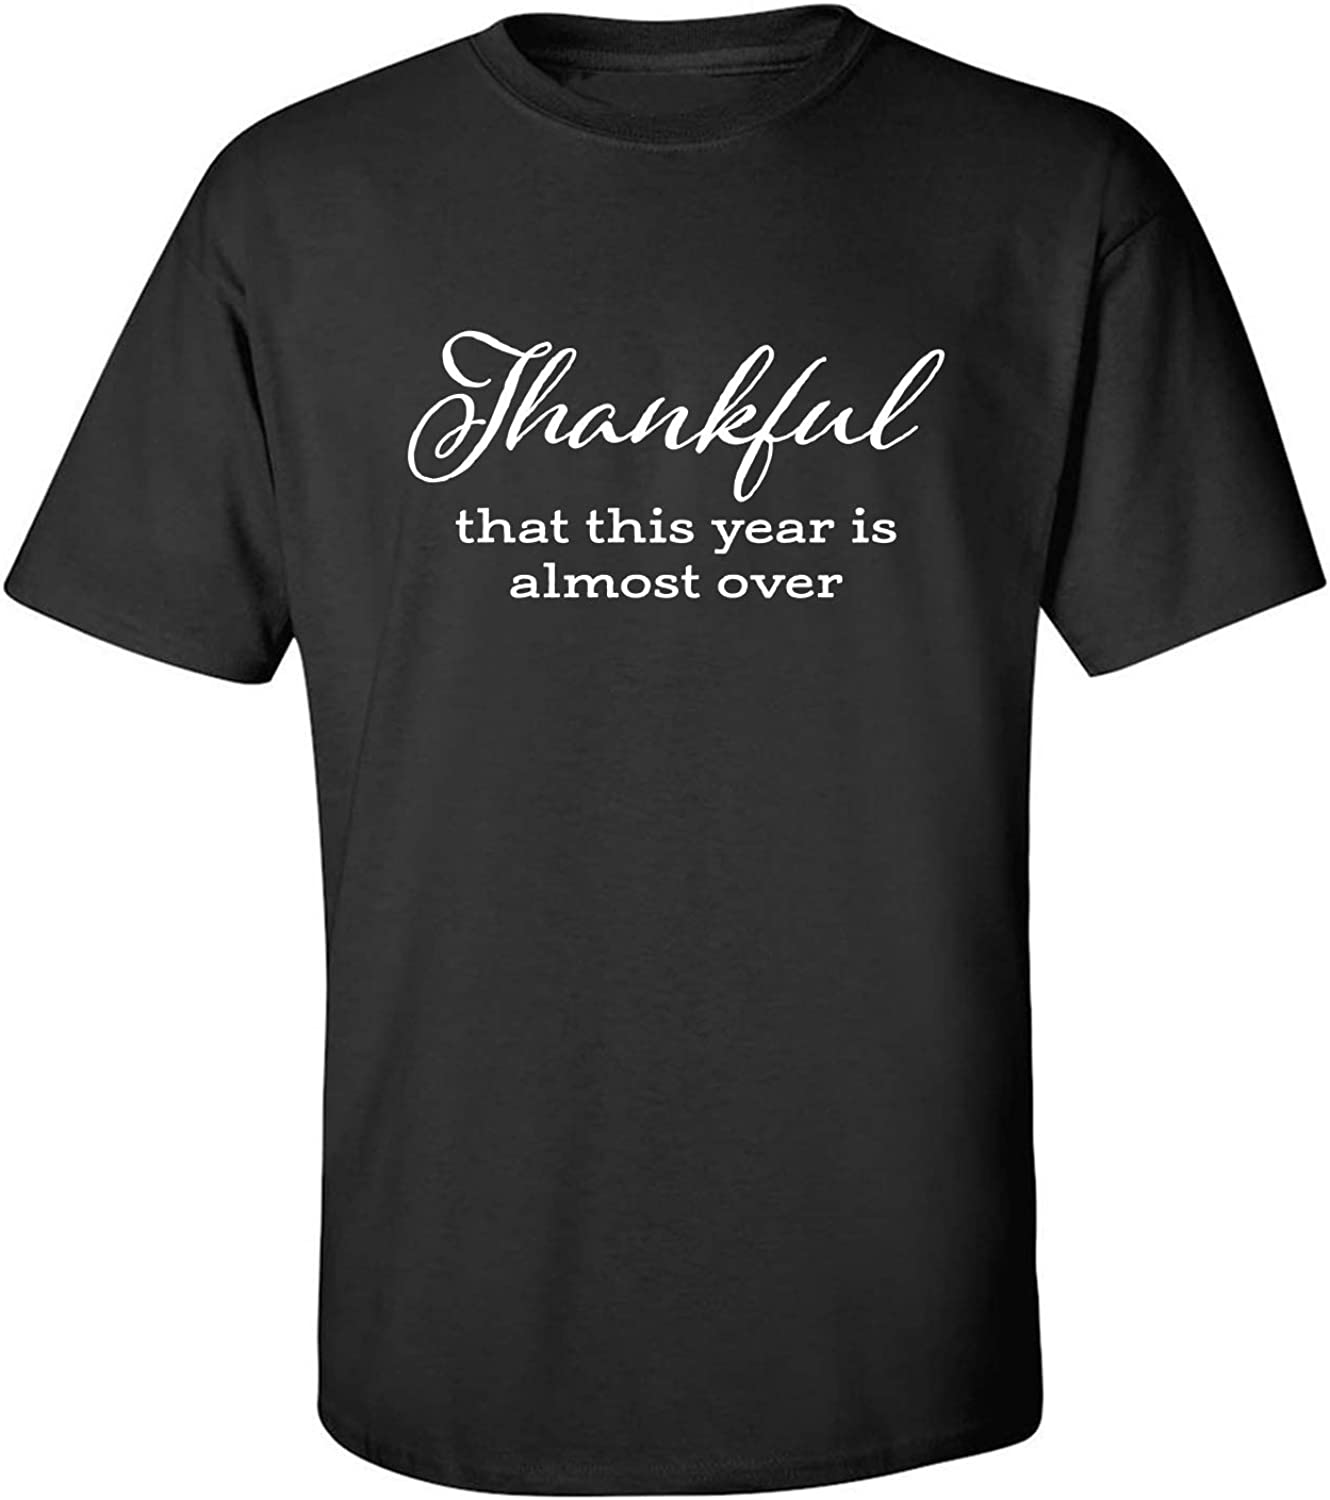 Thankful This Year is Almost Over Adult T-Shirt in Black - XXXXX-Large